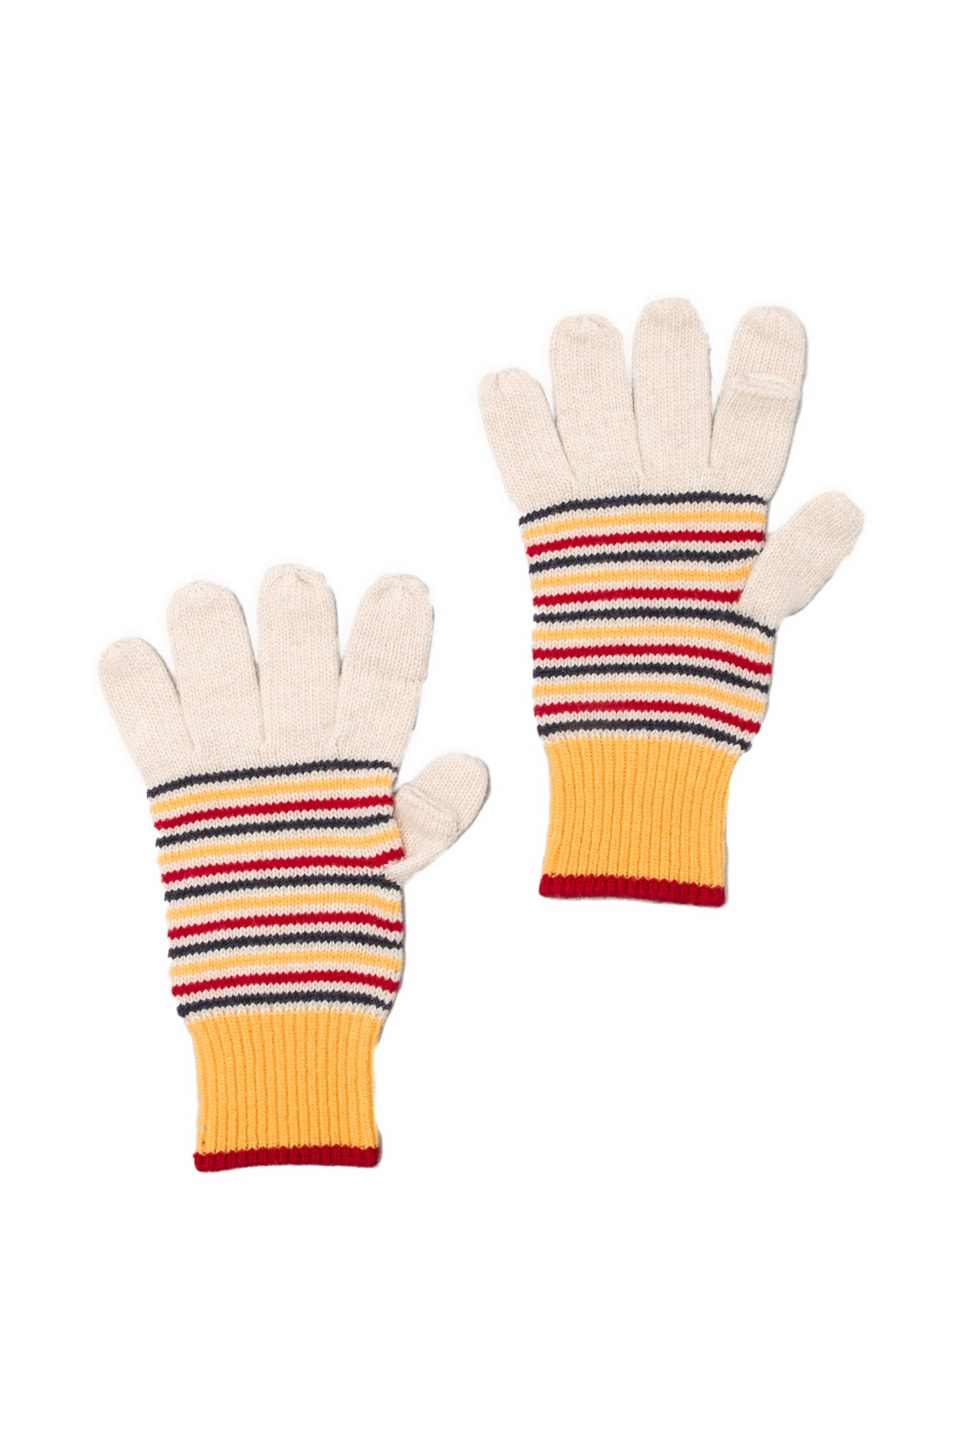 Jack Spade Keller Striped Gloves in Oatmeal